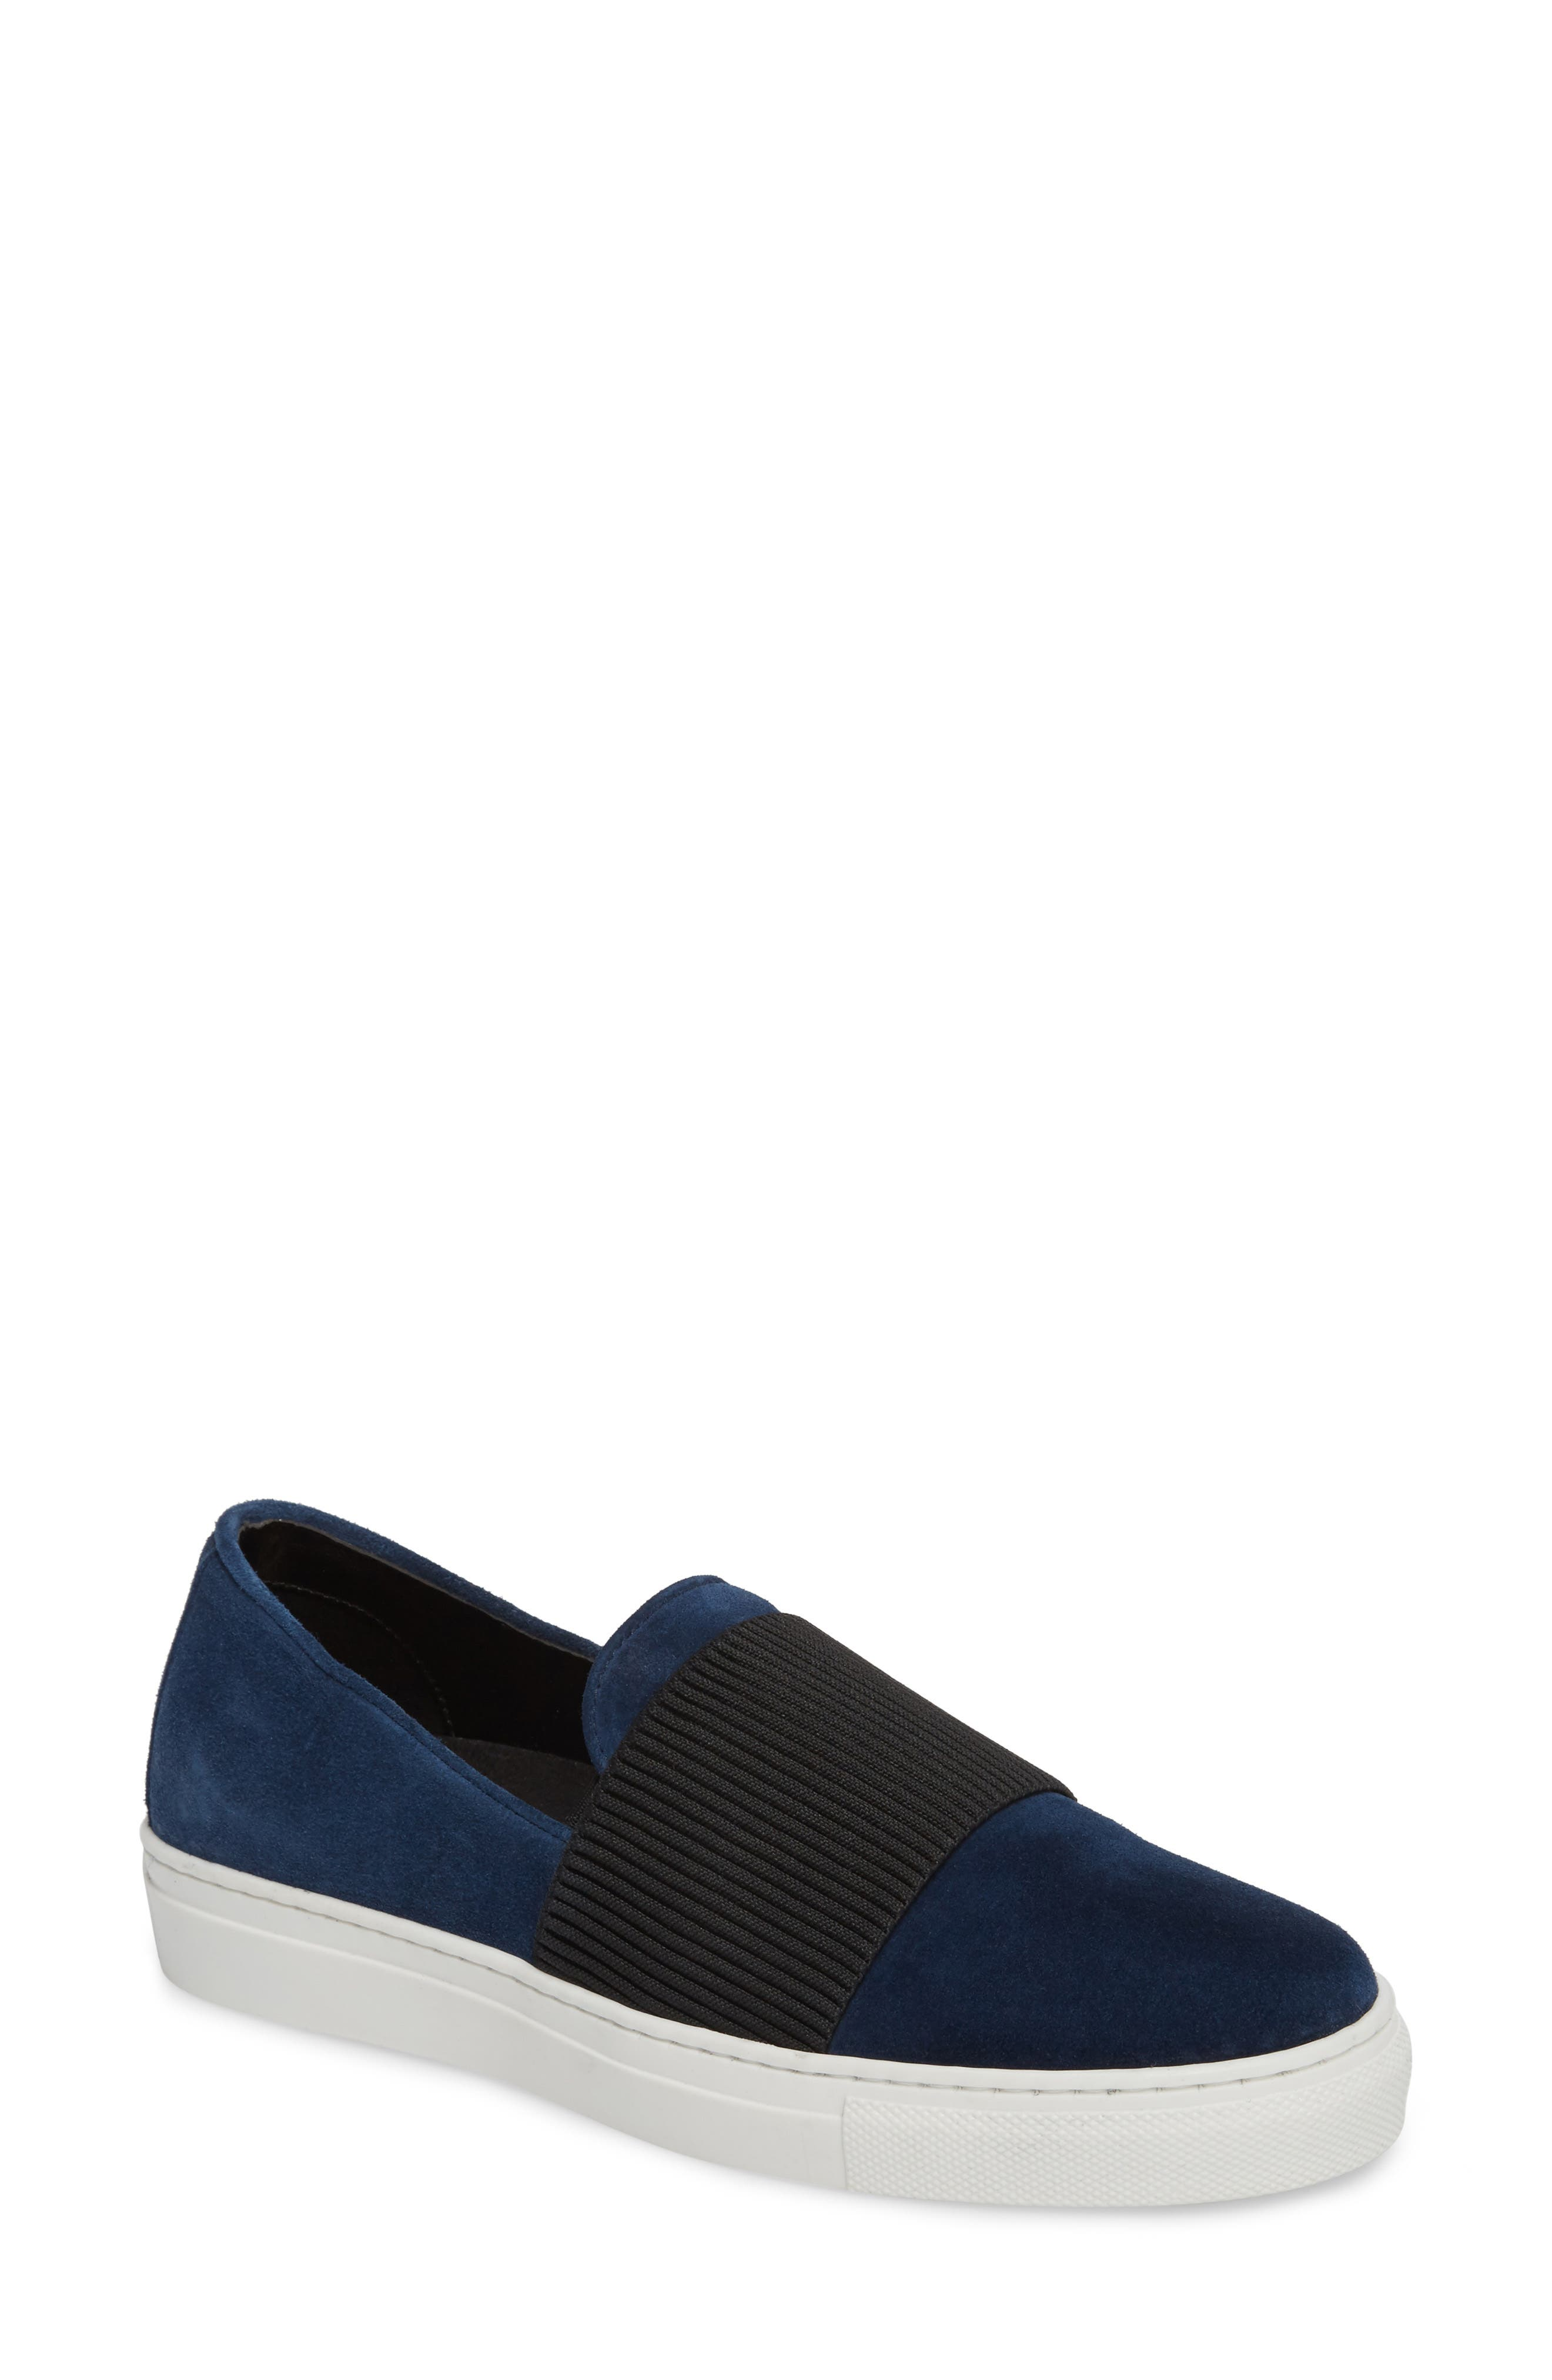 Otto Slip-On Sneaker,                             Main thumbnail 1, color,                             Navy Suede